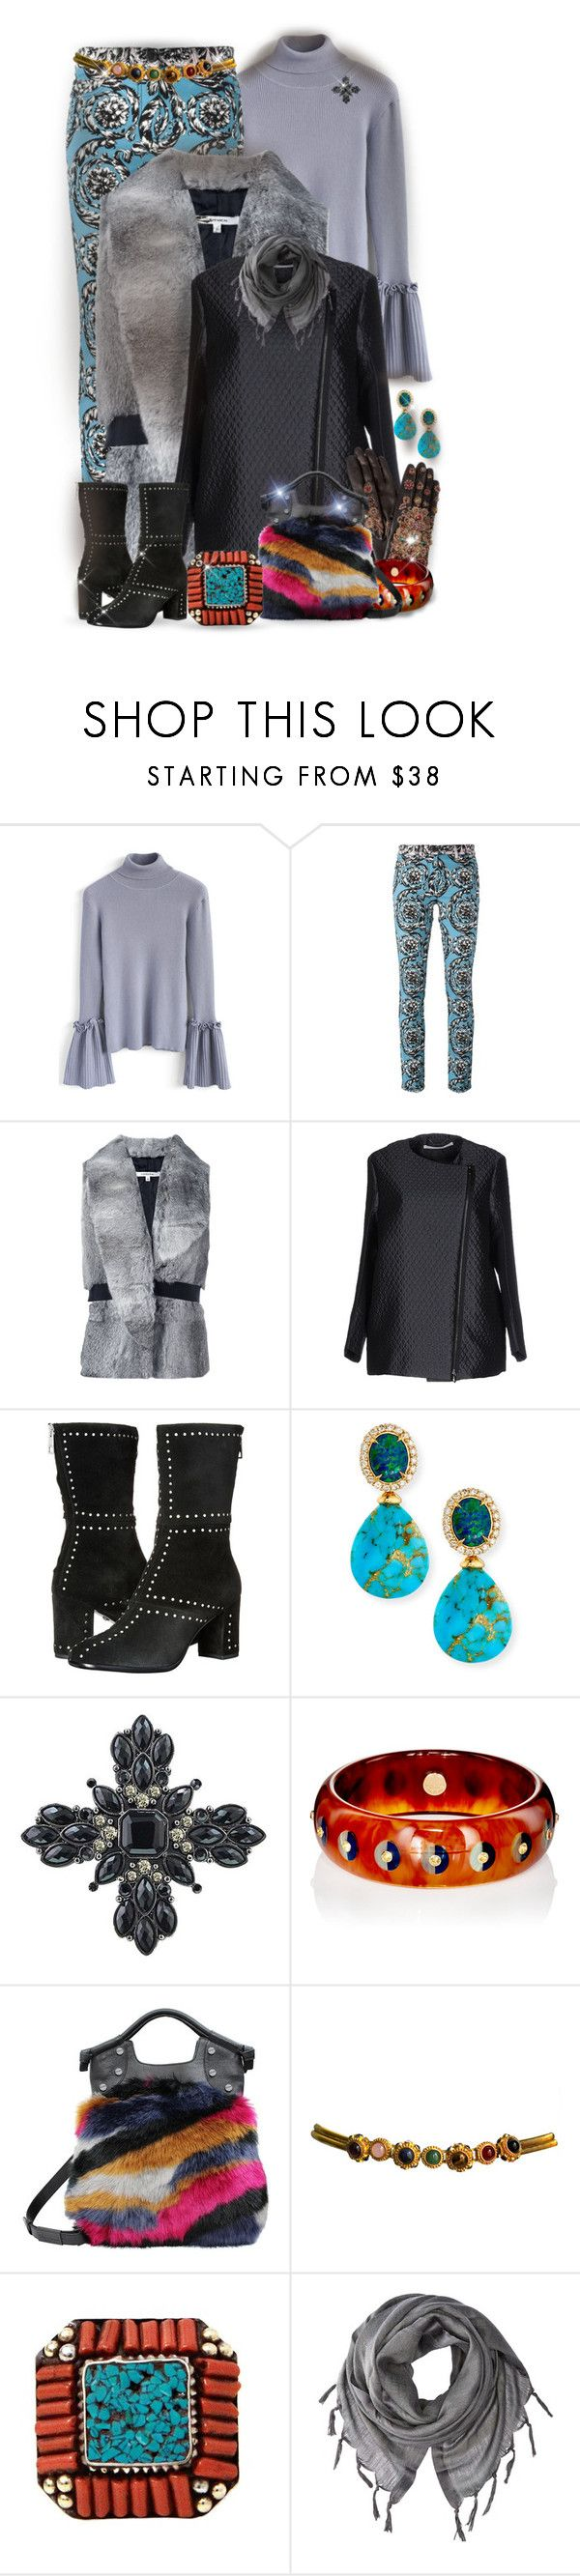 """Baroque Russian Winter *Outfit Only*"" by jcmp ❤ liked on Polyvore featuring Chicwish, Versace, Carven, Schumacher, Just Cavalli, Rina Limor, 1928, Mark Davis, Foley + Corinna and Judith Leiber"